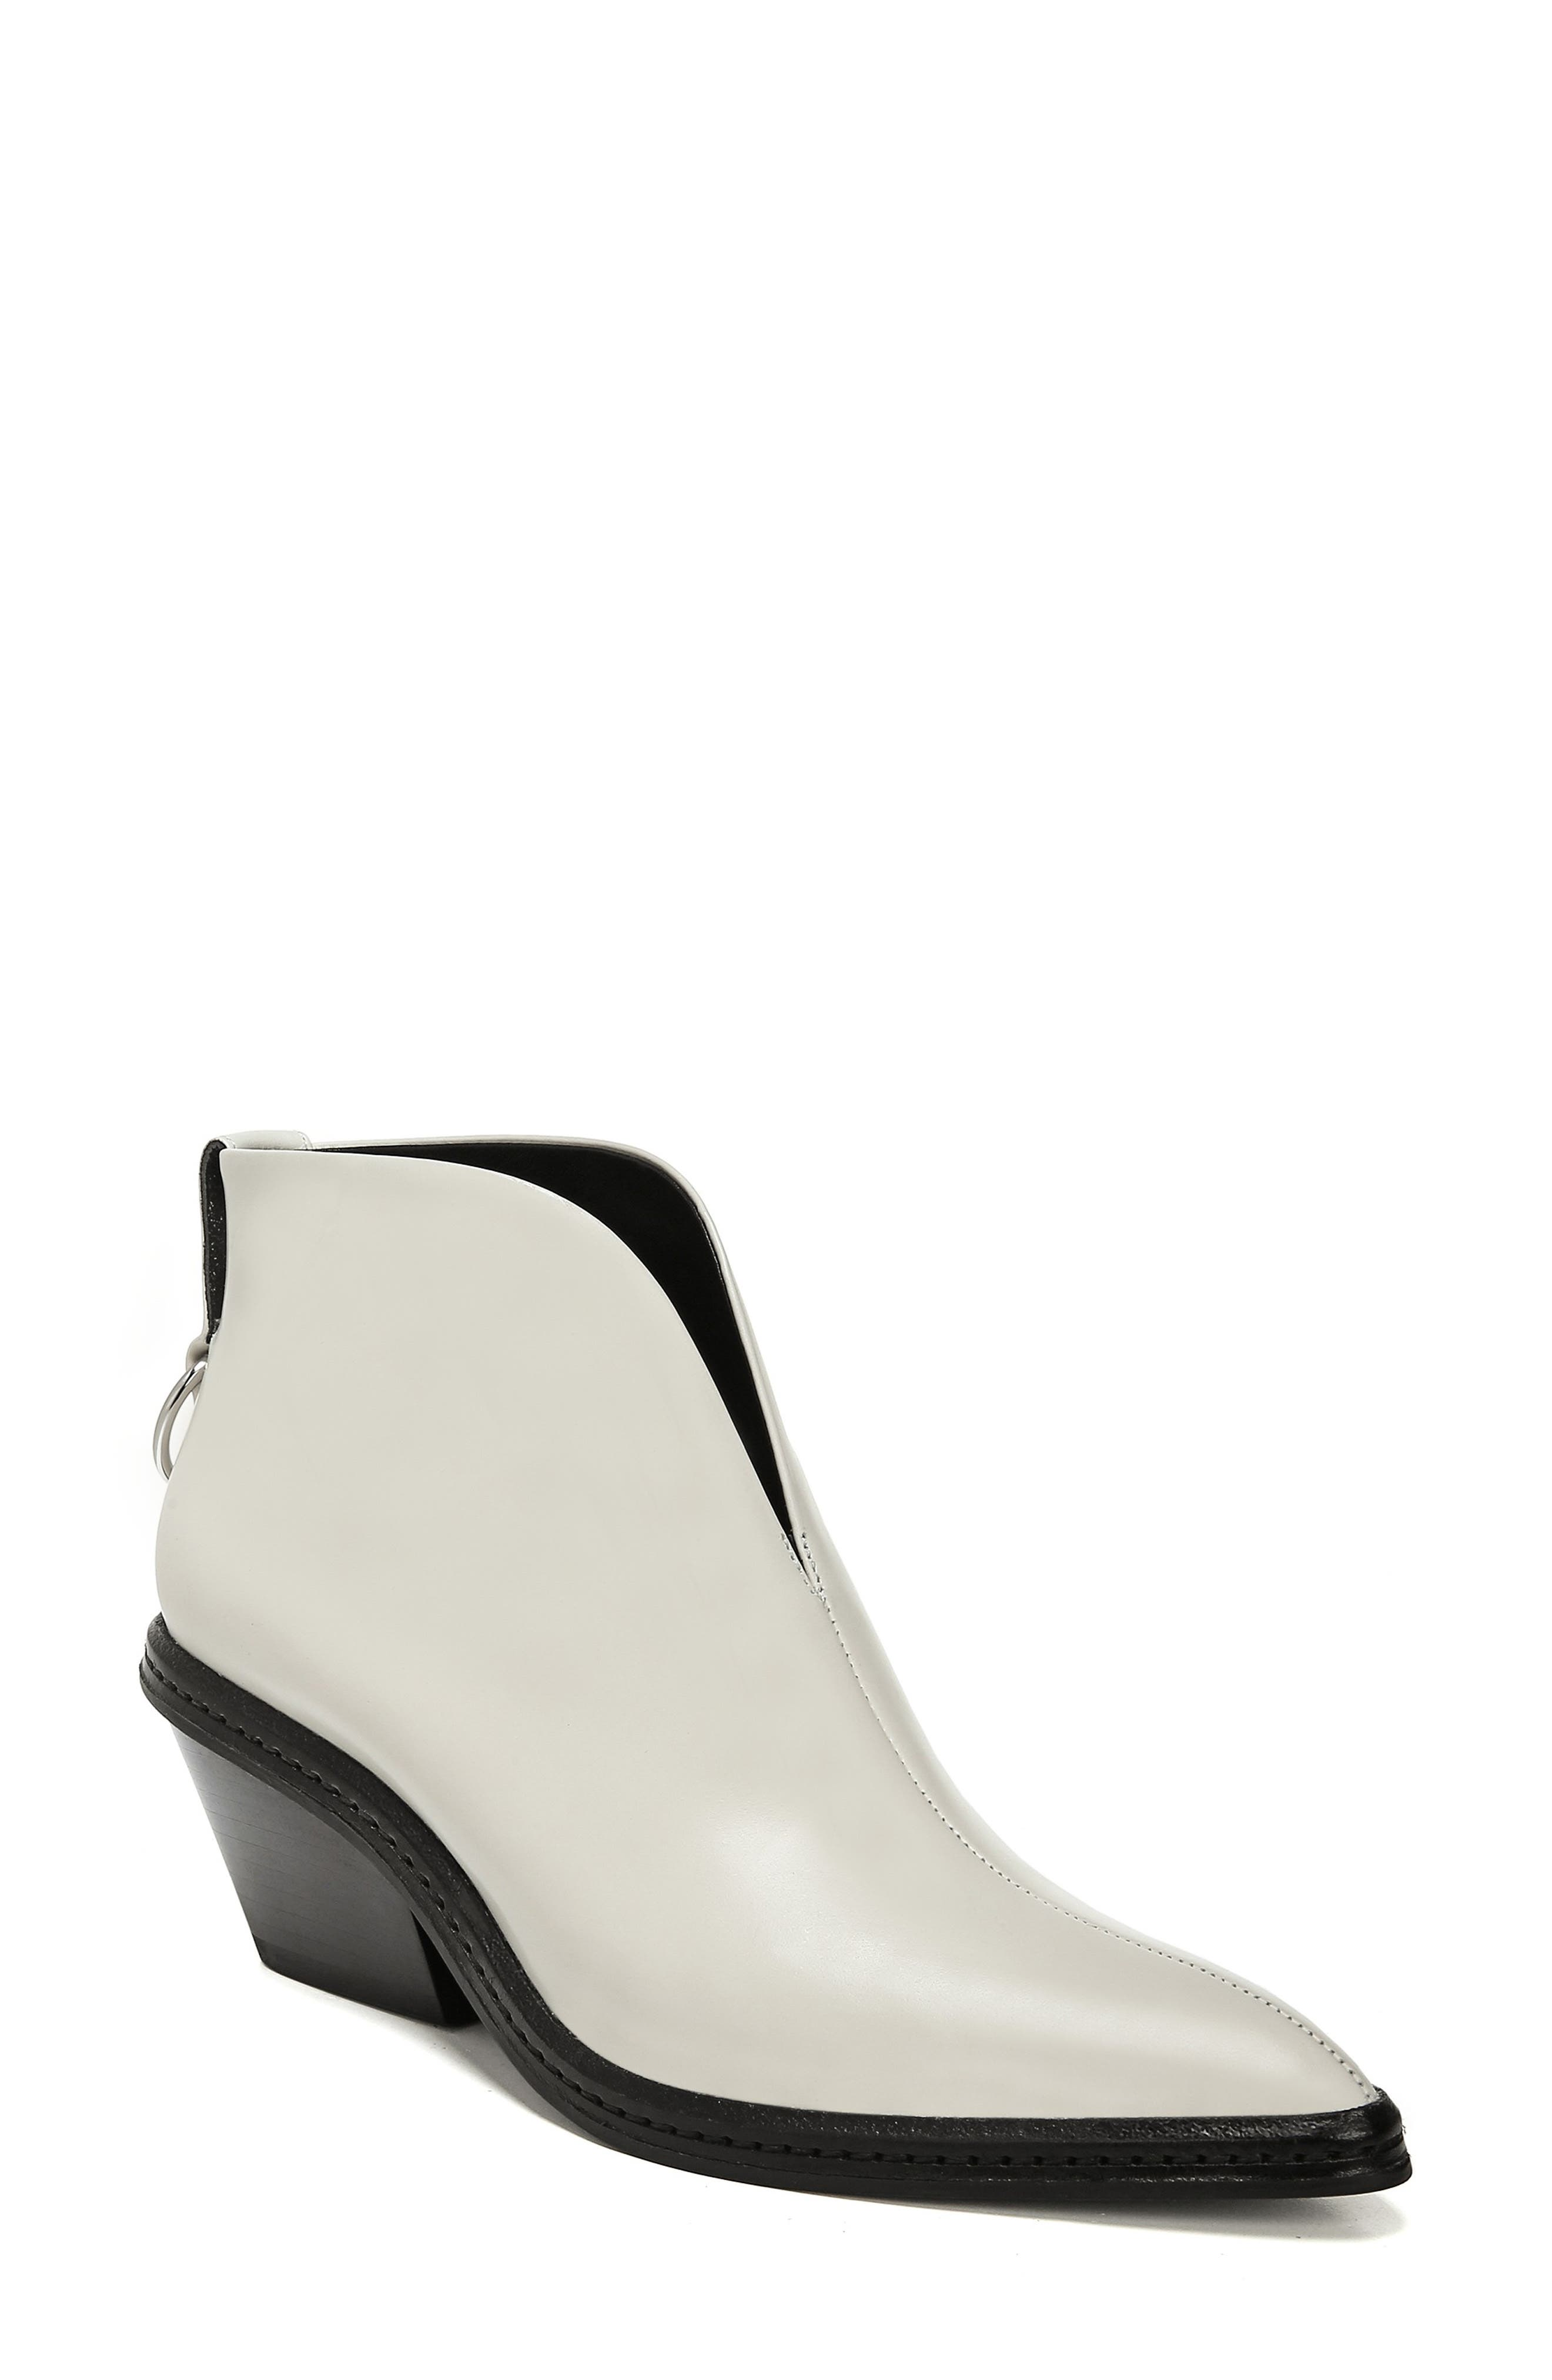 VIA SPIGA Women'S Fianna Pointed Toe Leather Ankle Booties in Bone